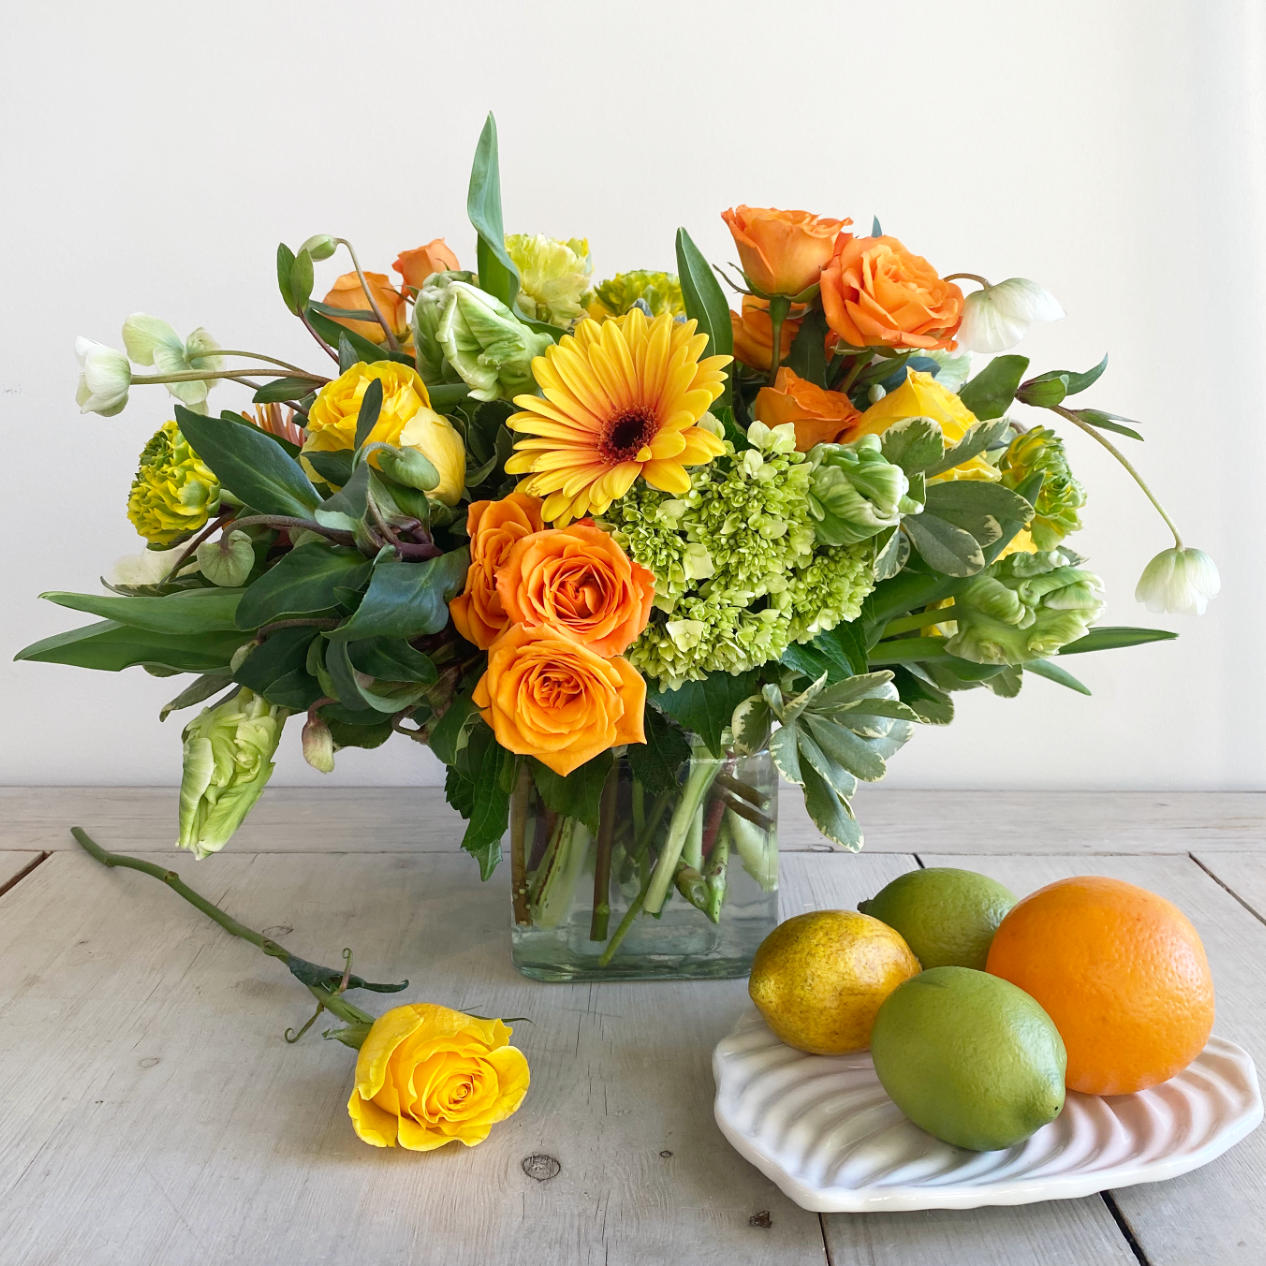 A beautiful citrus toned flower arrangement. A mix of lemon, limes, bright oranges, and stunning yellows. The arrangement features green Hellebore, green and white Parrot Tulips, orange crush Spray Roses, Kiwi Hydrangea, and large two-toned Gerbera Daisys. In a clear glass cylinder. next to it, a plate with lemons and limes, and there is a yellow rose over the table